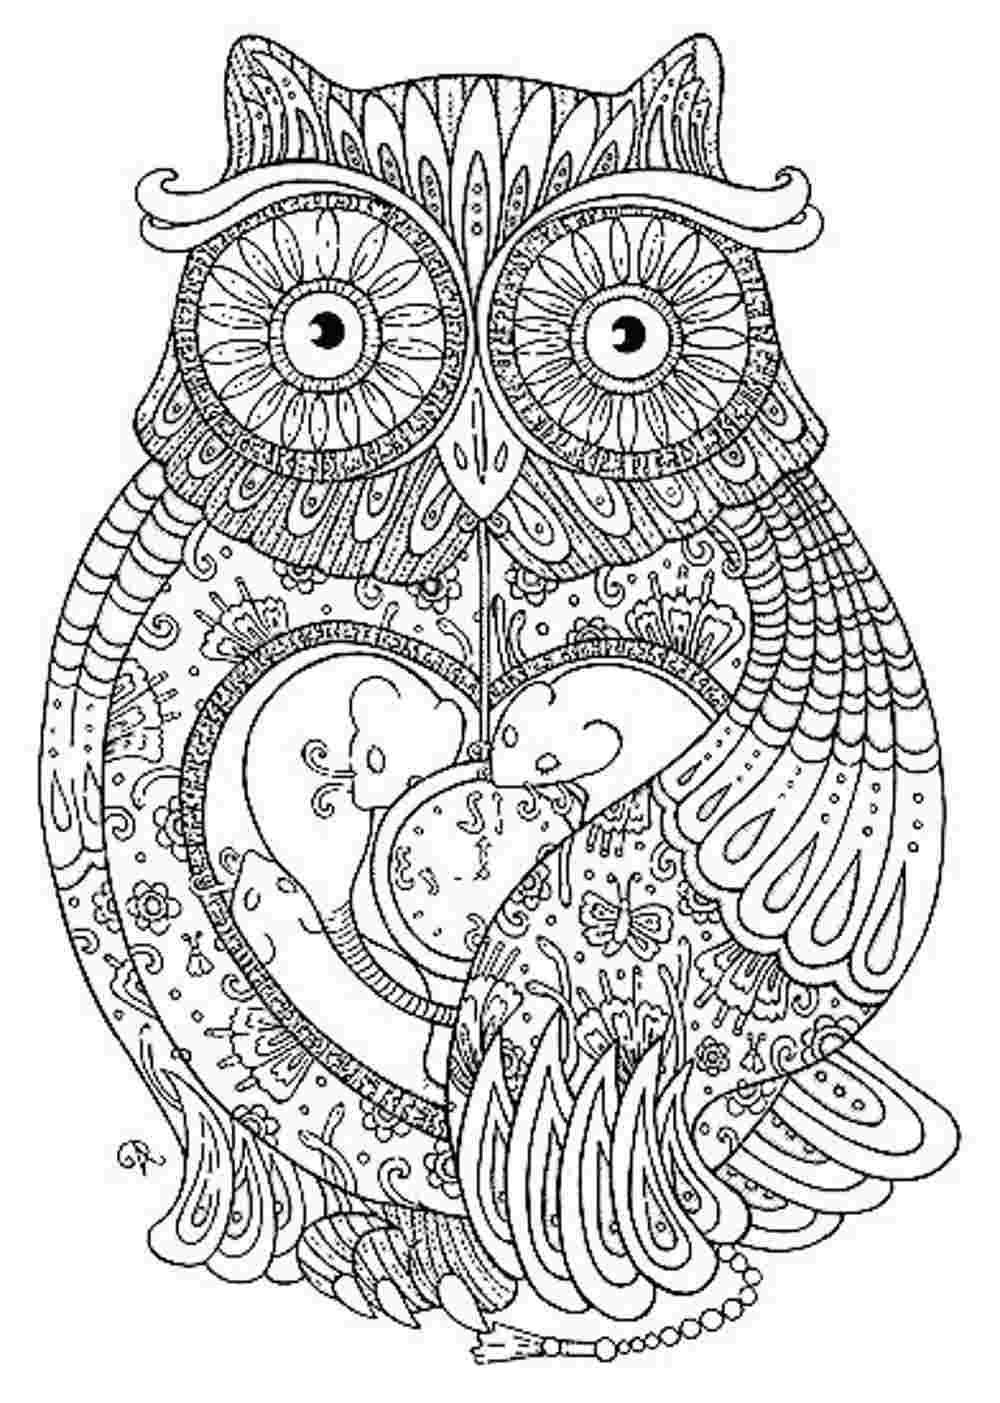 Owl Coloring Pages For Adults Printable Kids Colouring Pages Owl